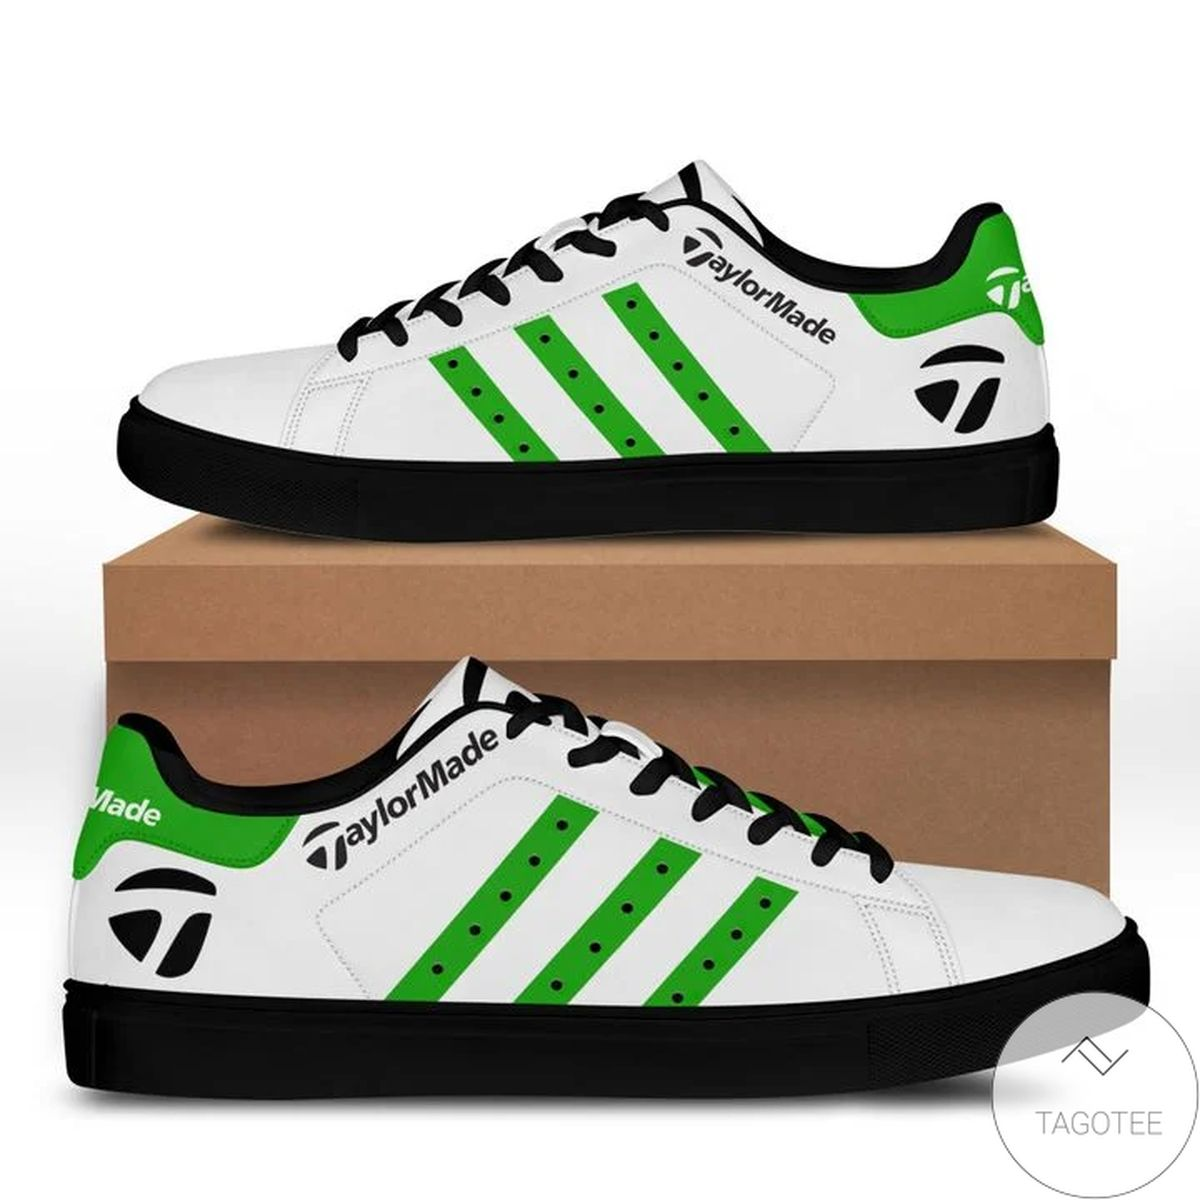 Taylor Made Green Stan Smith Shoes